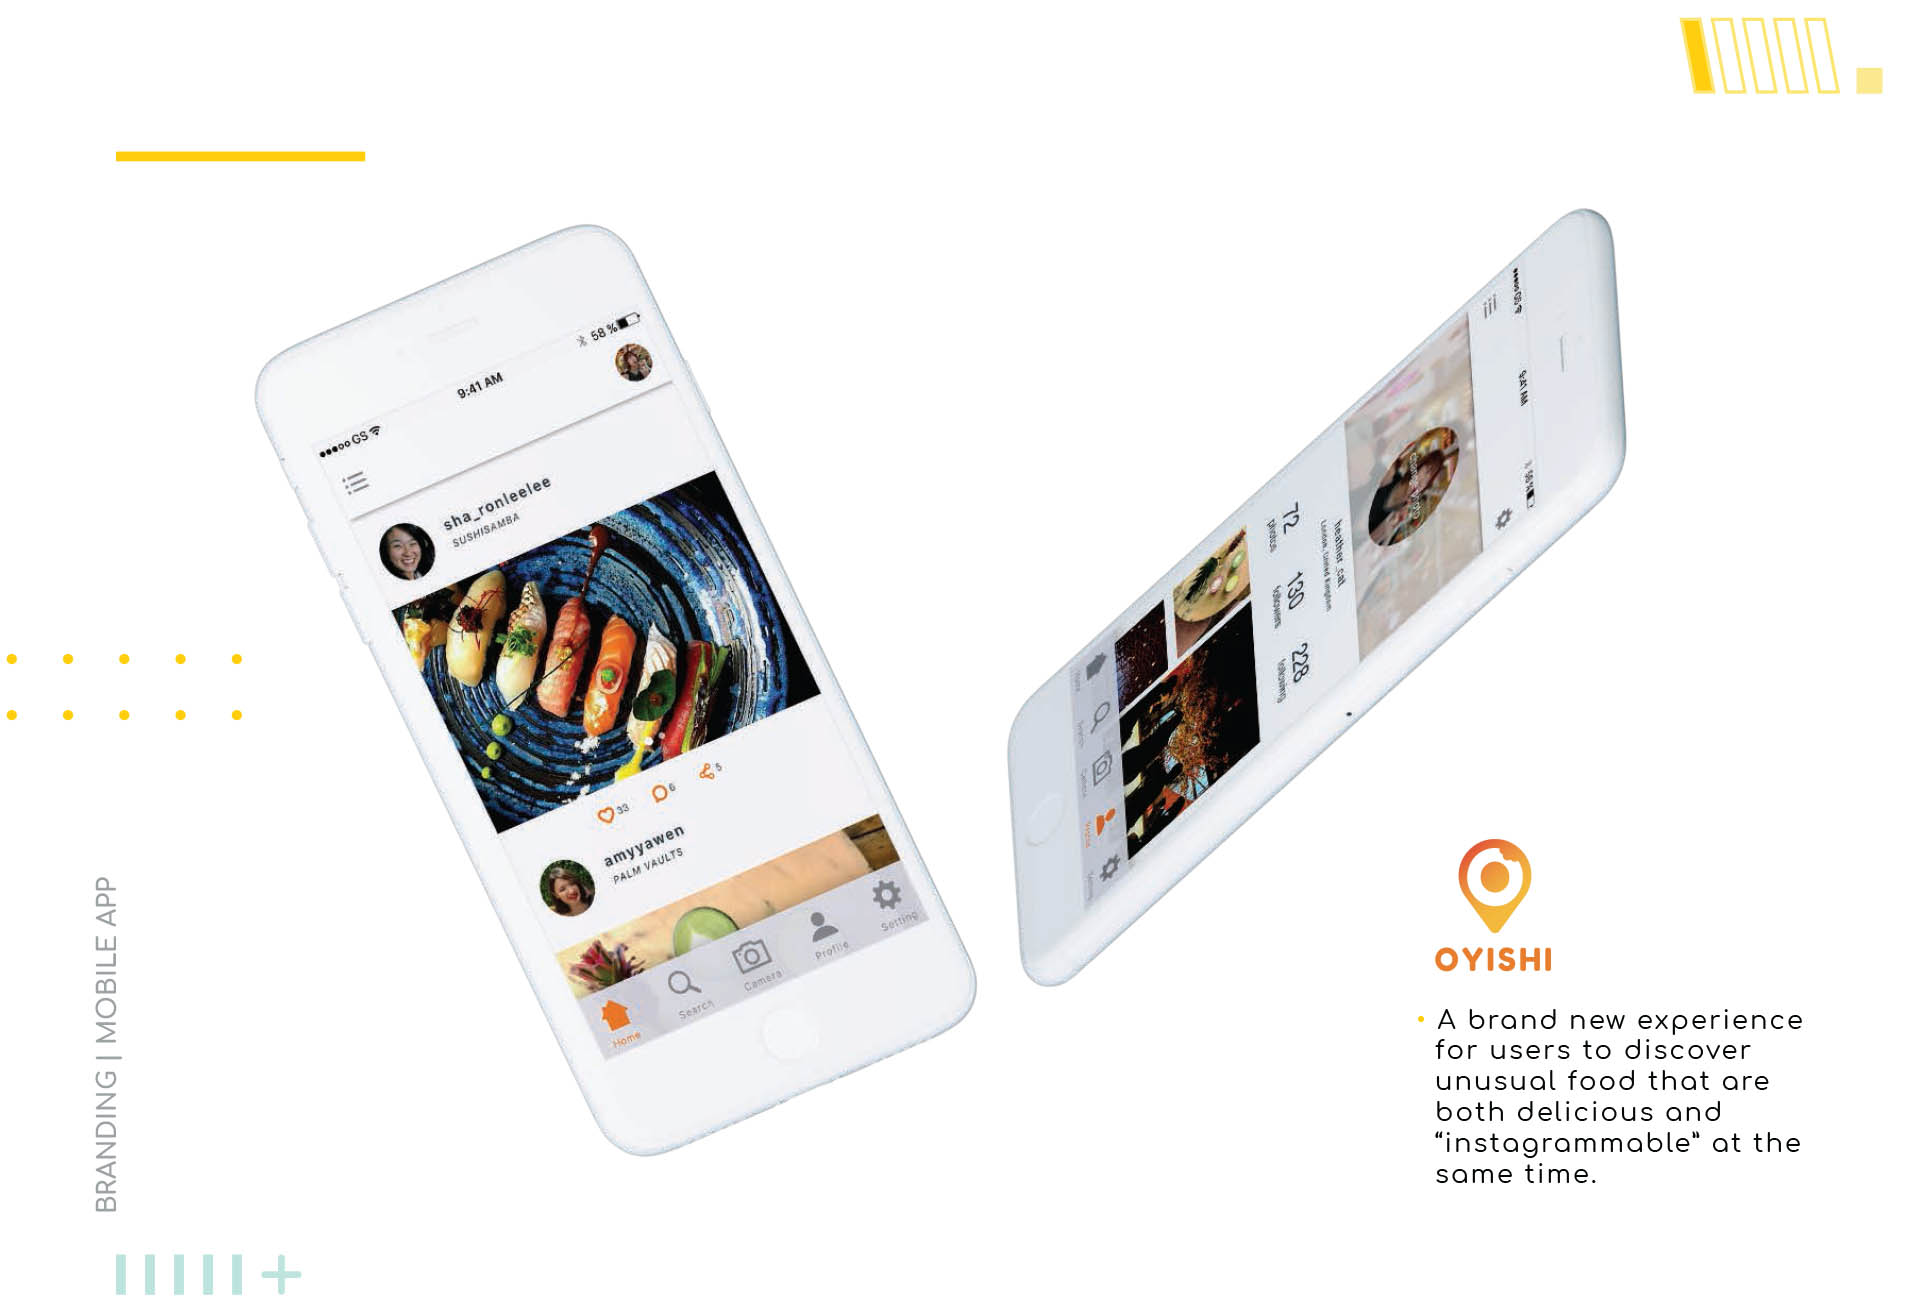 Brand and app design for Oyishi enabling you to find new places to dine and photograph